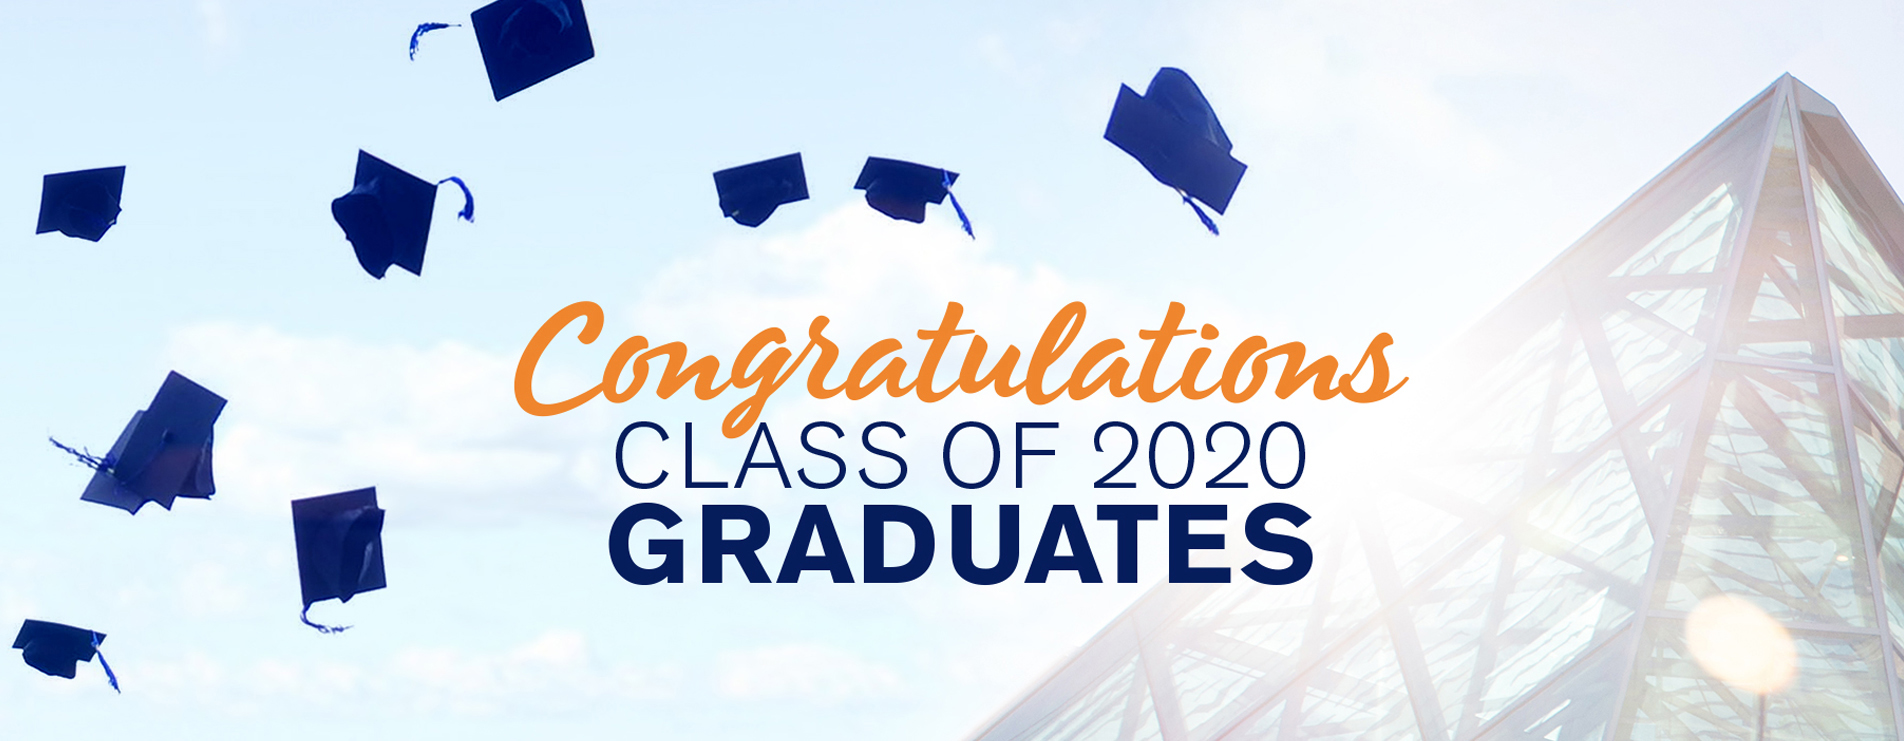 Suny New Paltz Academic Calendar Spring 2022.Suny New Paltz Virtual Commencement Celebrates Graduates Exceptional Achievements And Resilience Suny New Paltz News